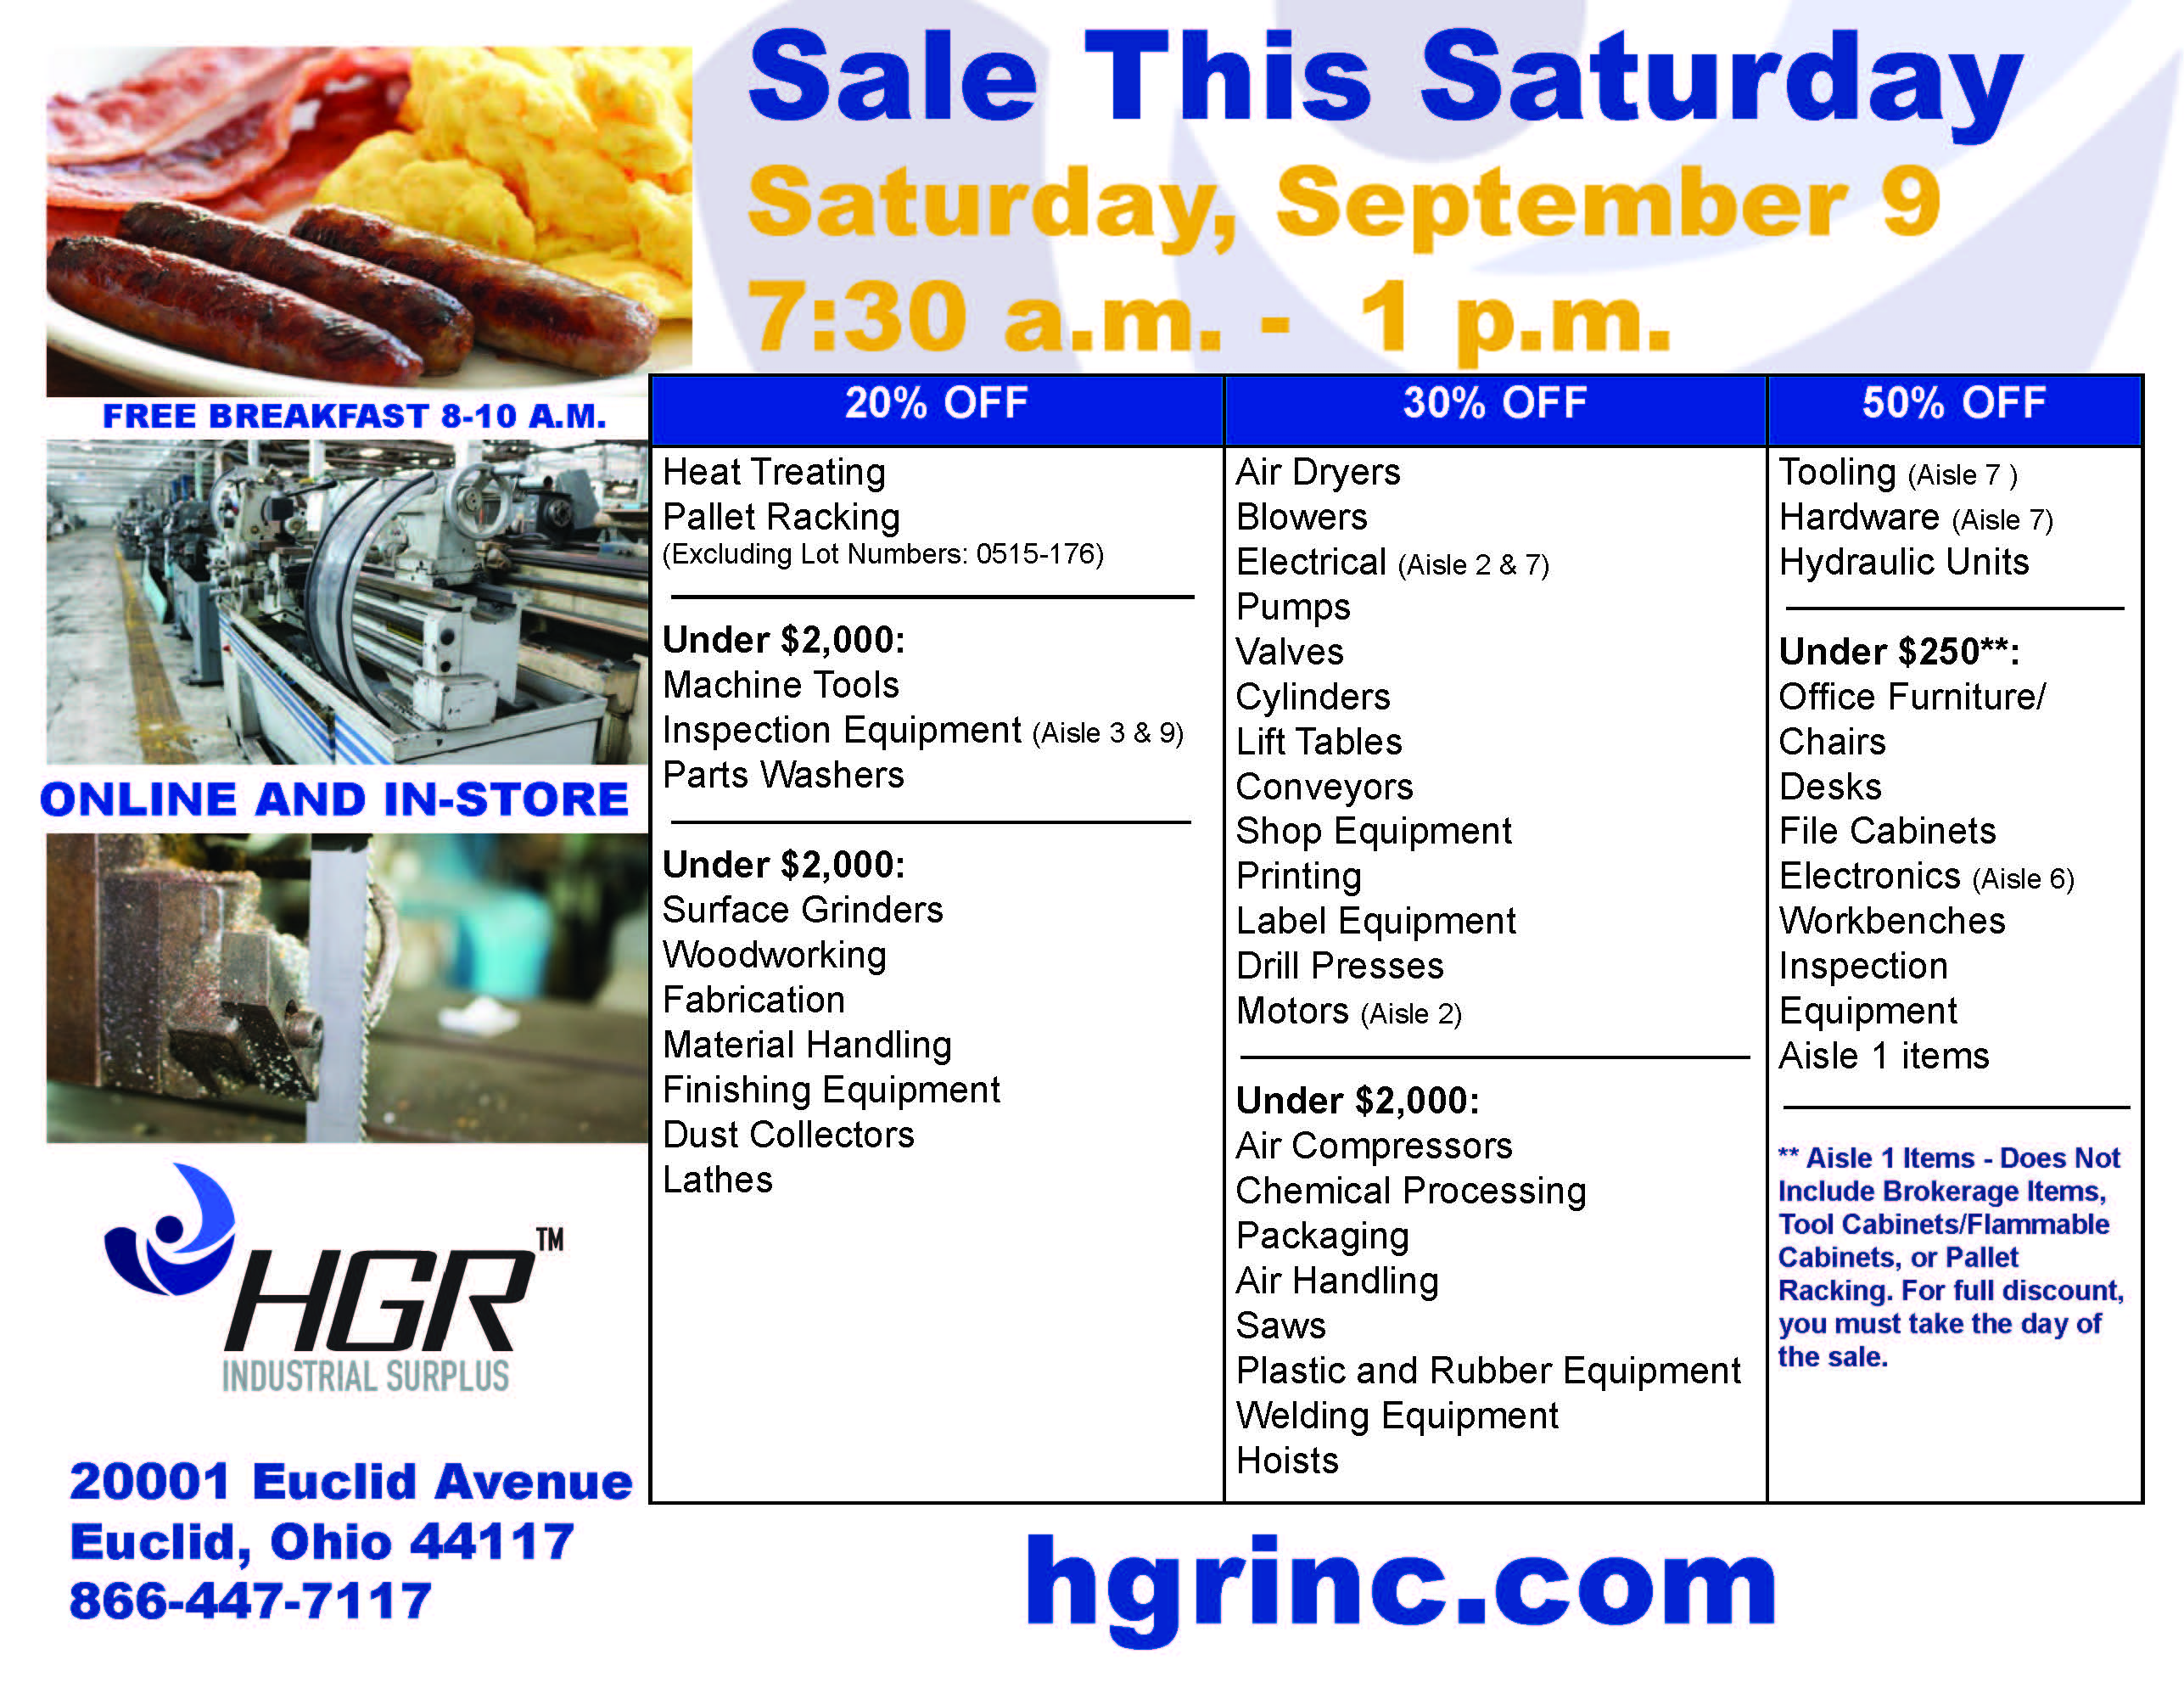 HGR Industrial Surplus Sept. 9, 2017 Lørdag salg flyer